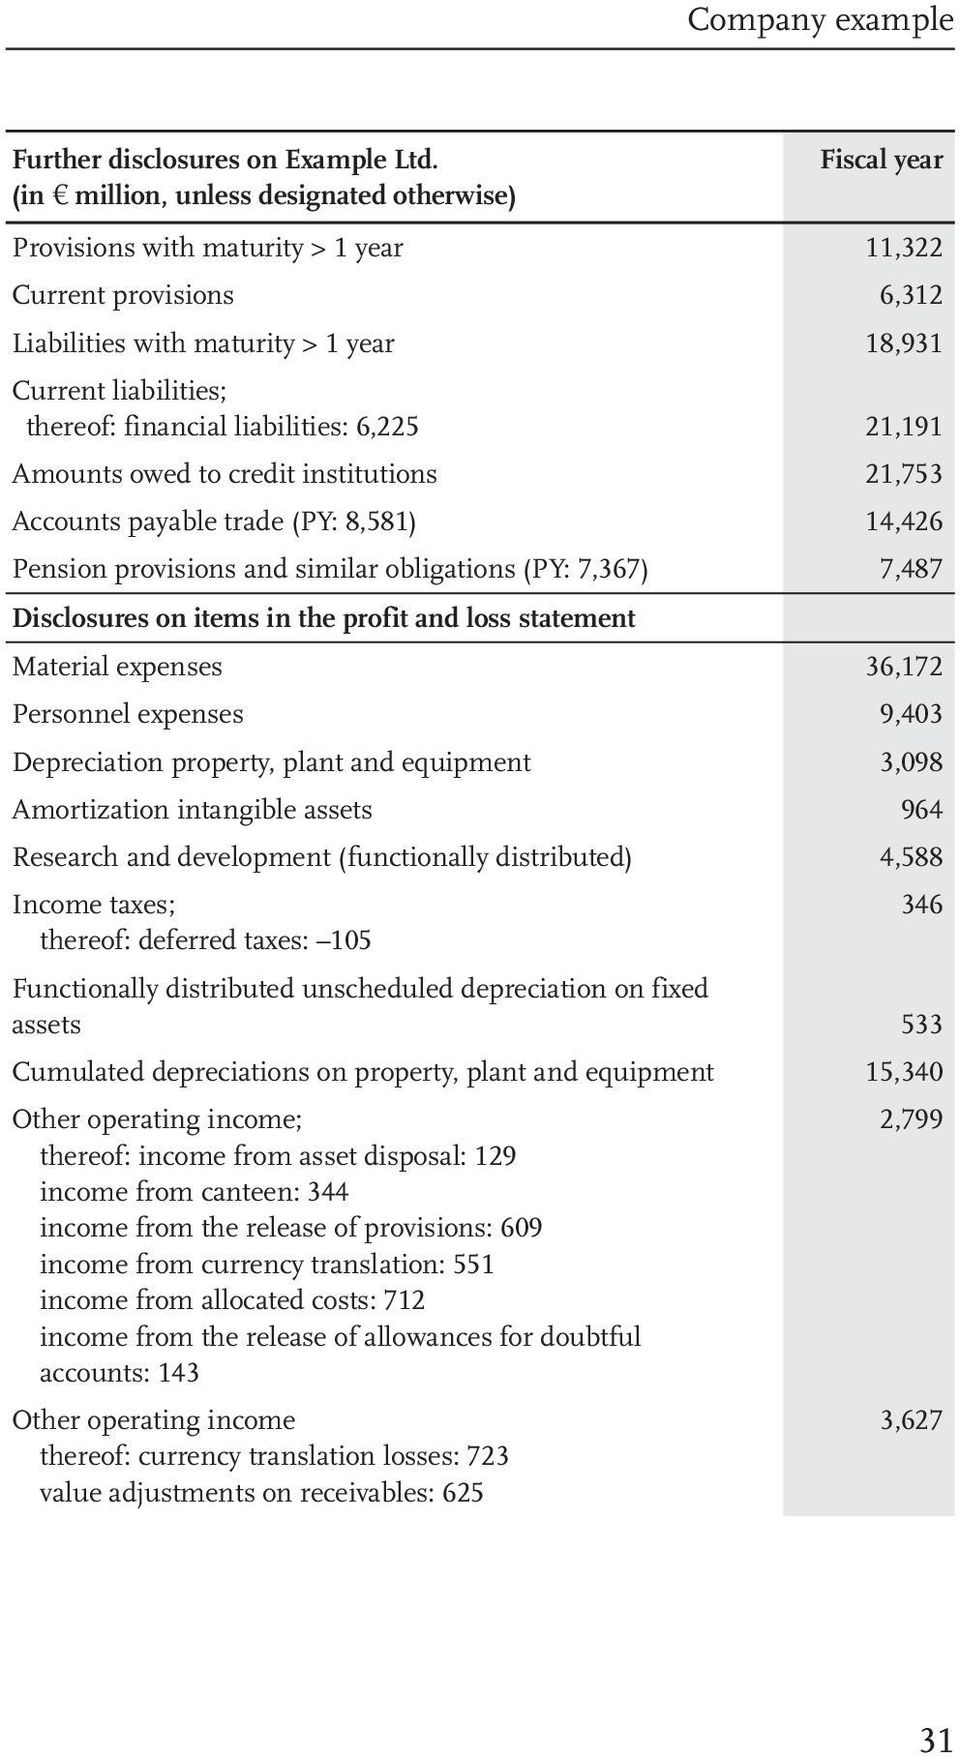 financial liabilities: 6,225 21,191 Amounts owed to credit institutions 21,753 Accounts payable trade (PY: 8,581) 14,426 Pension provisions and similar obligations (PY: 7,367) 7,487 Disclosures on